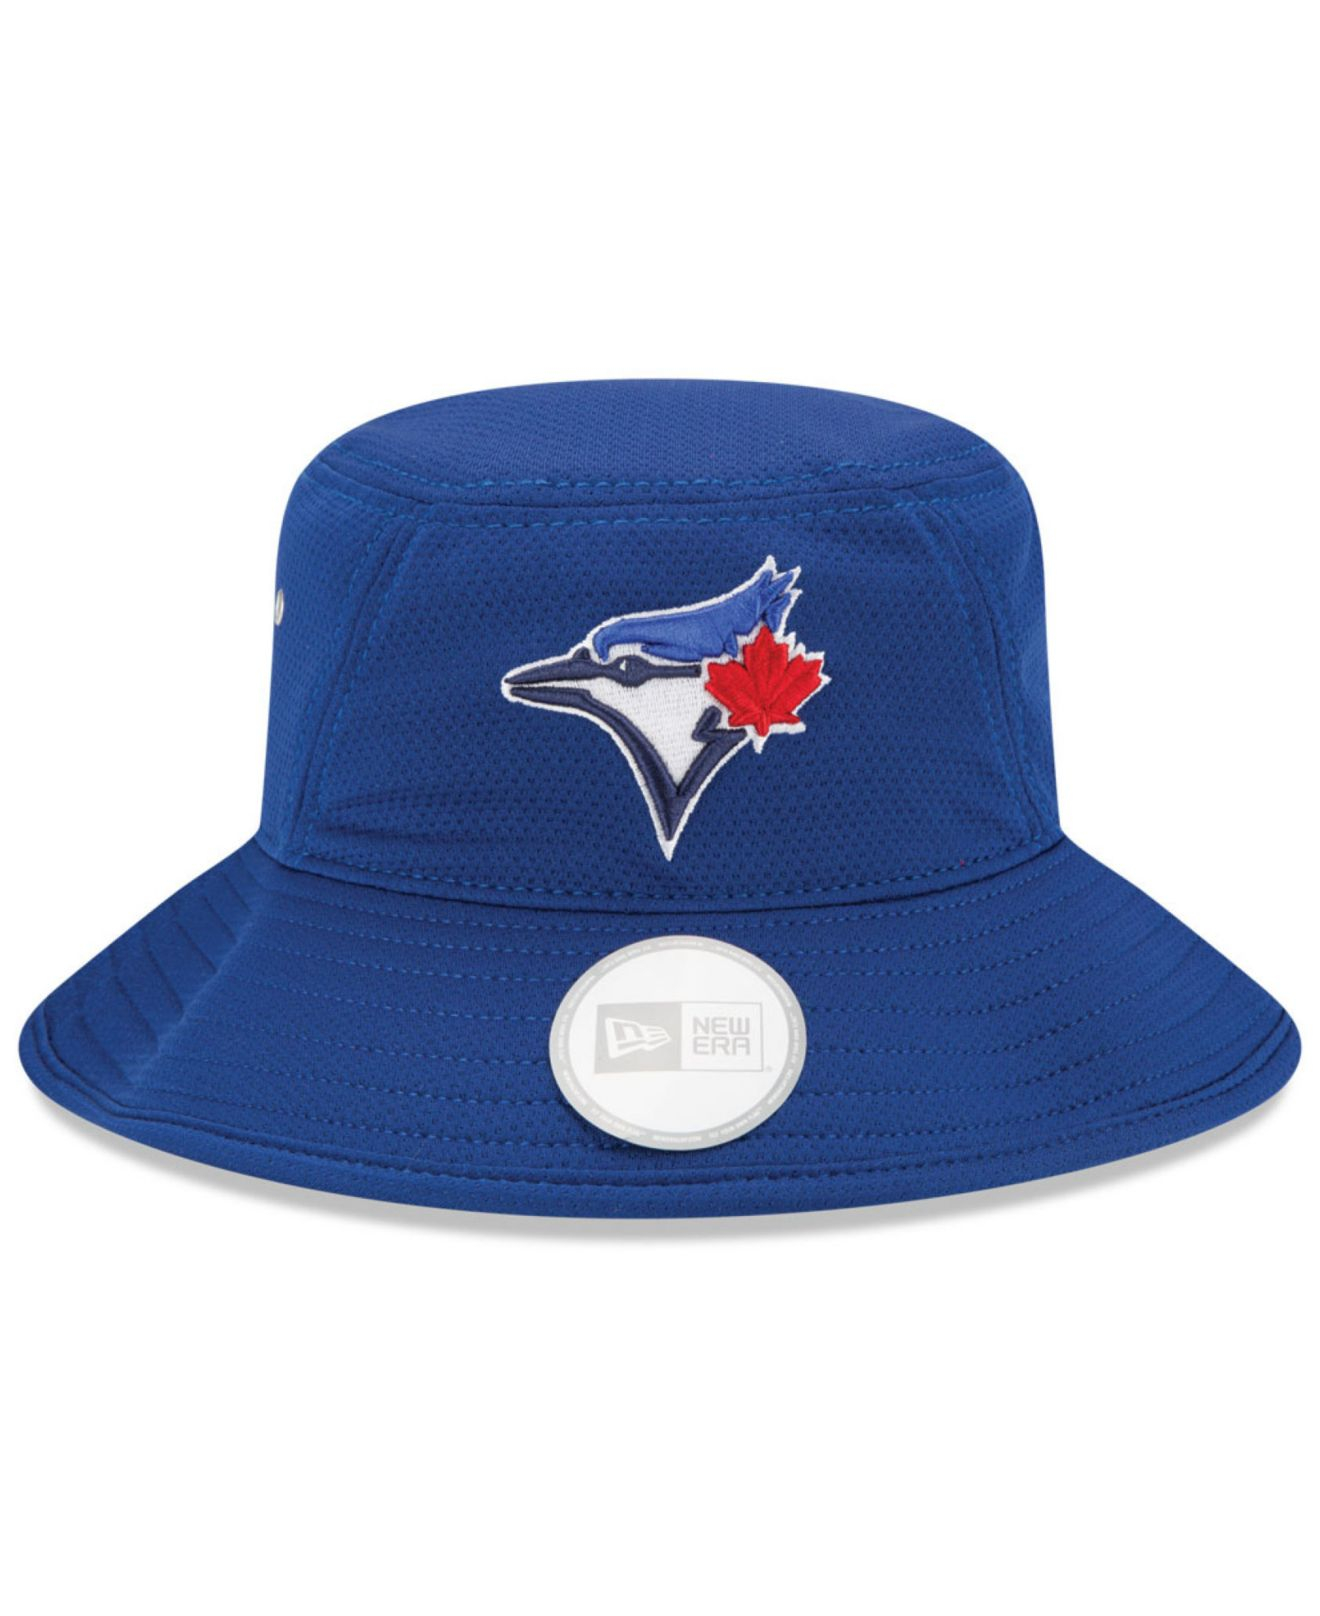 25e14c4eb76 ... new era 2018 mlb all star workout on field low profile 59fifty fitted hat  navy 02e26 a91eb  coupon for lyst ktz toronto blue jays team redux bucket  hat ...